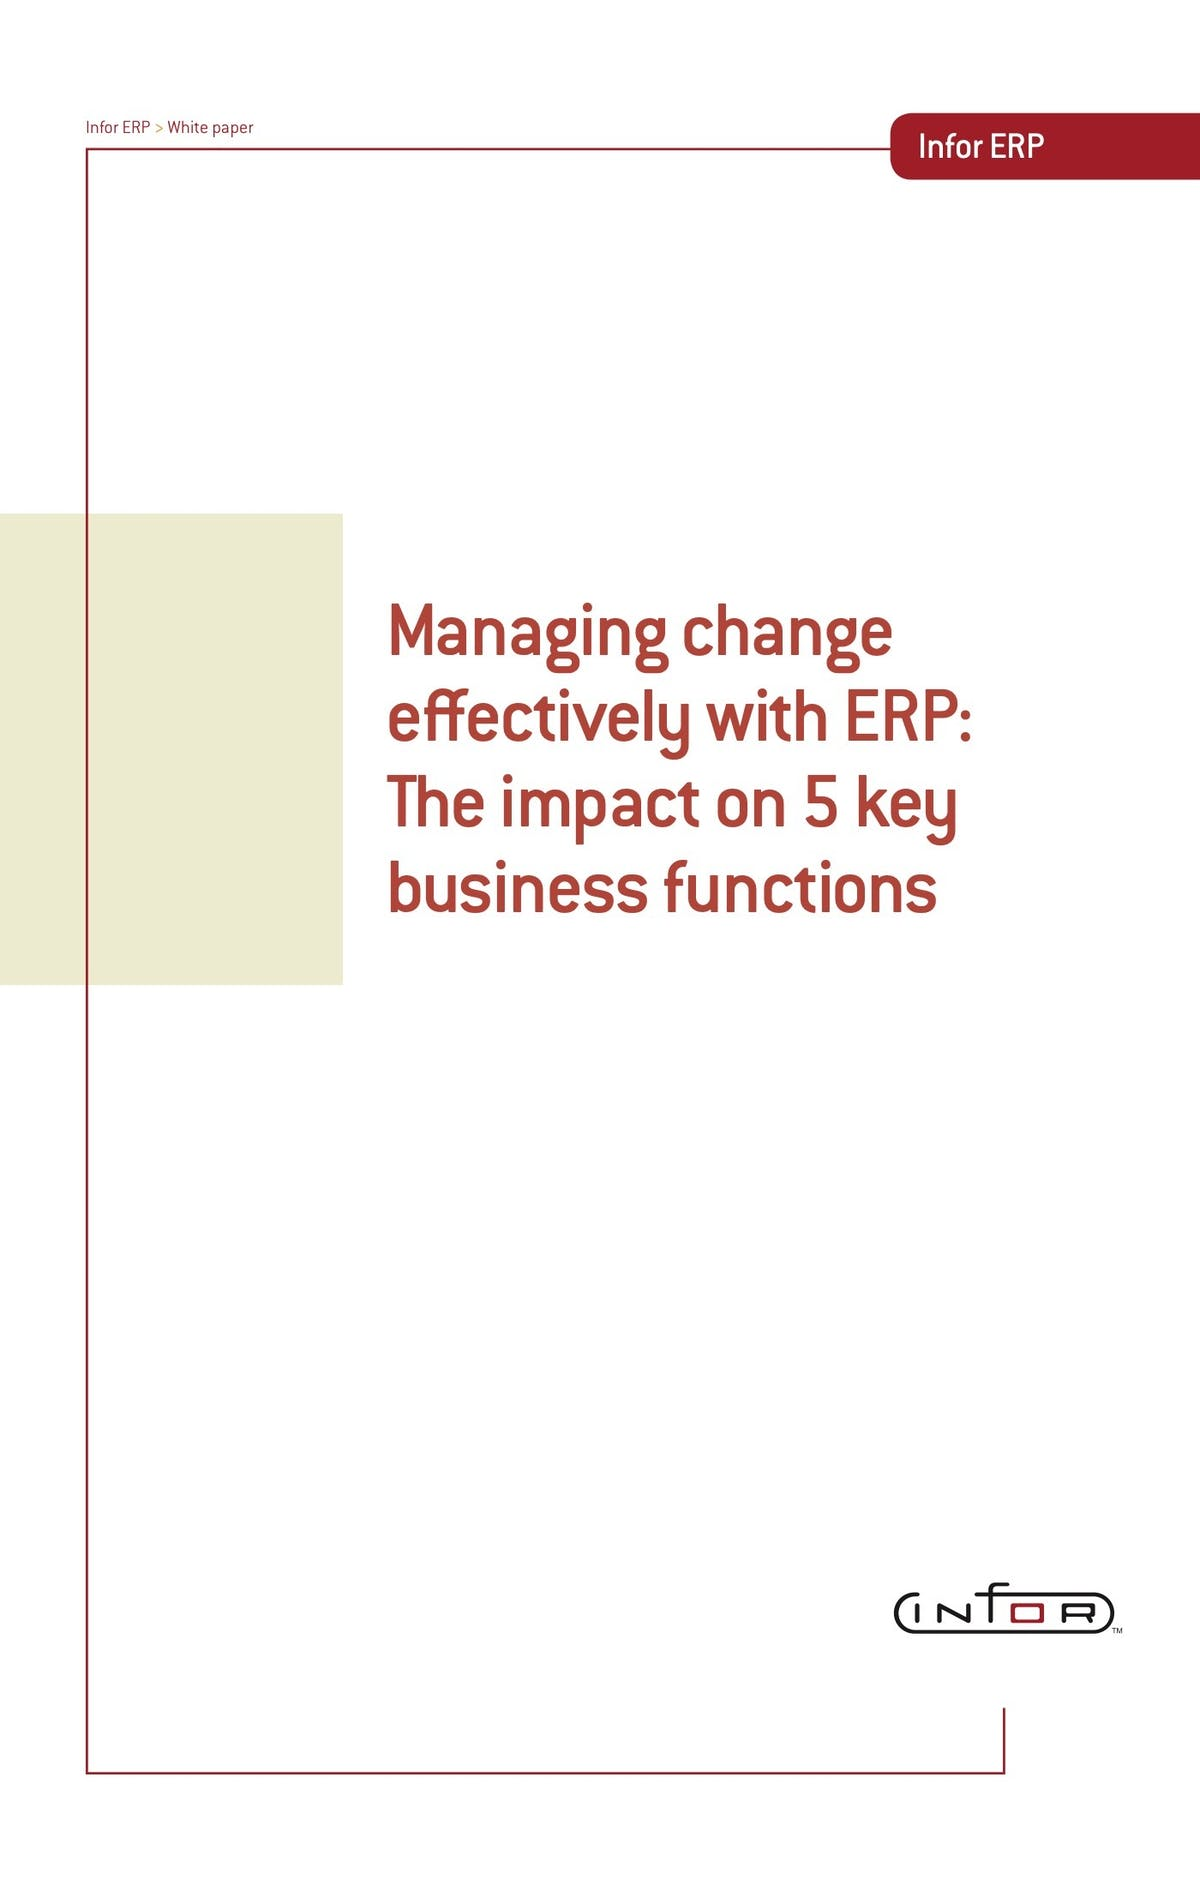 Infor LN White Paper - Managing Change Effectively with ERP